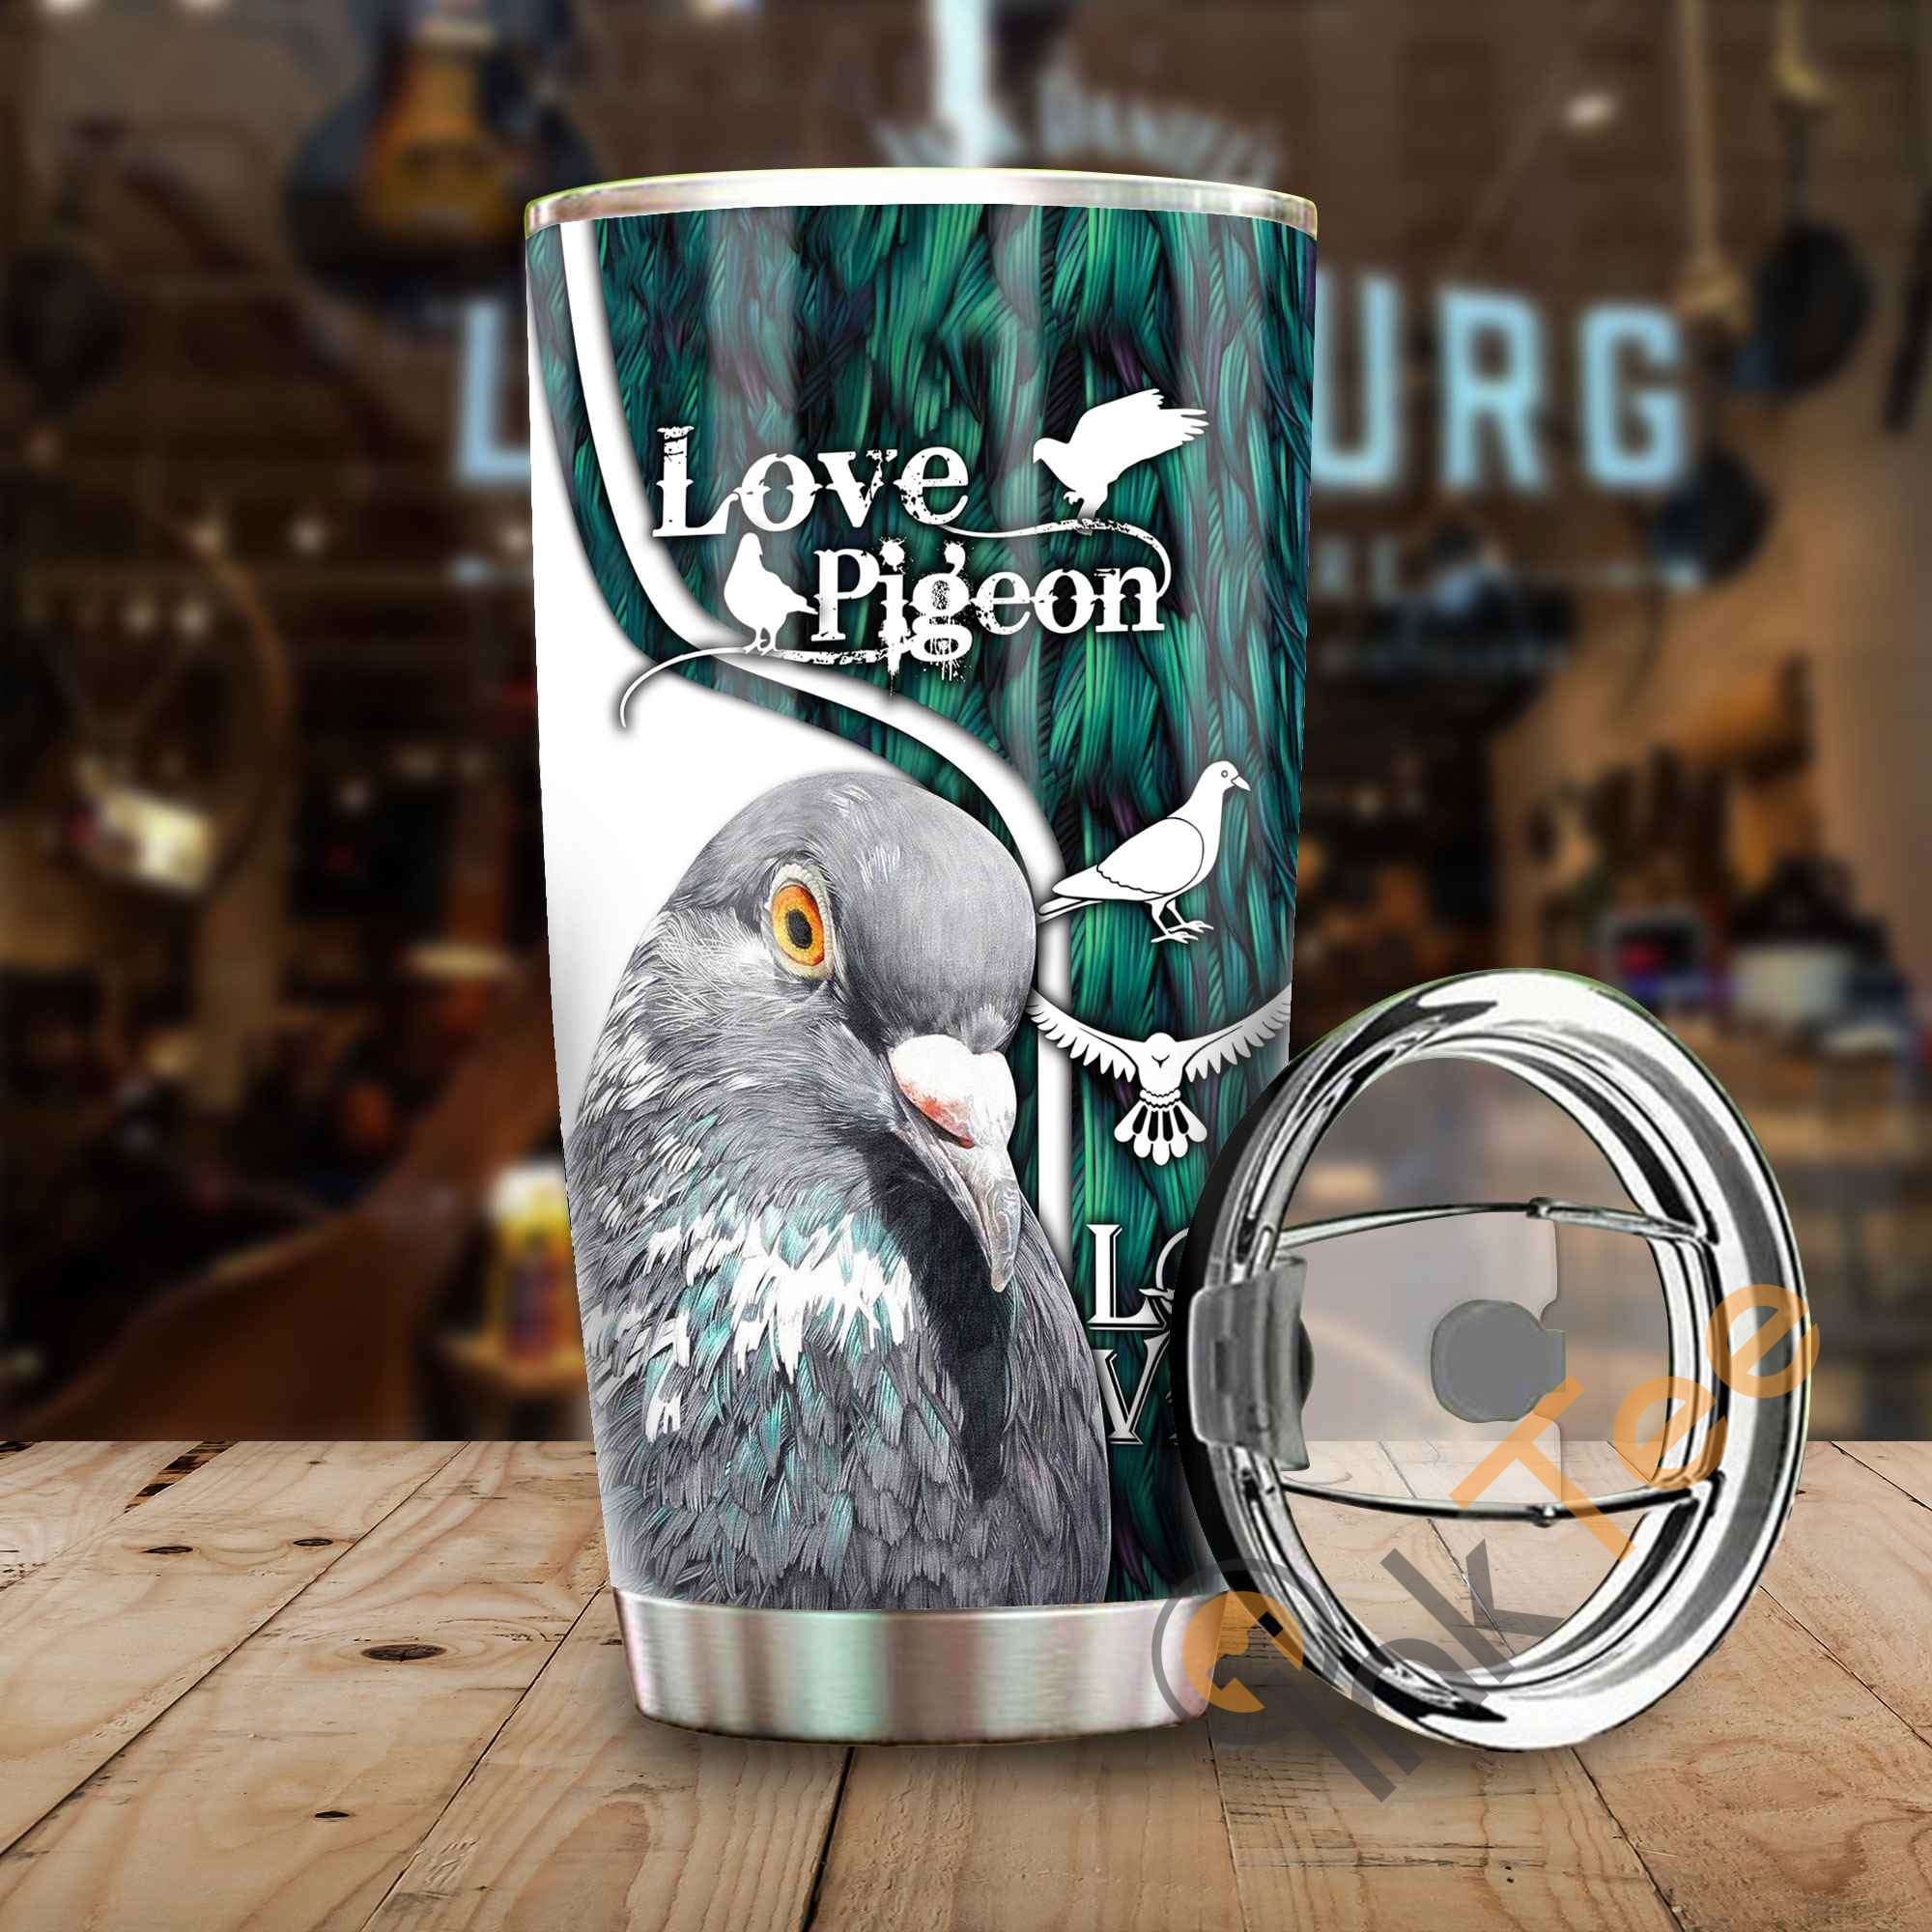 Beautiful Pigeon Amazon Best Seller Sku 3480 Stainless Steel Tumbler